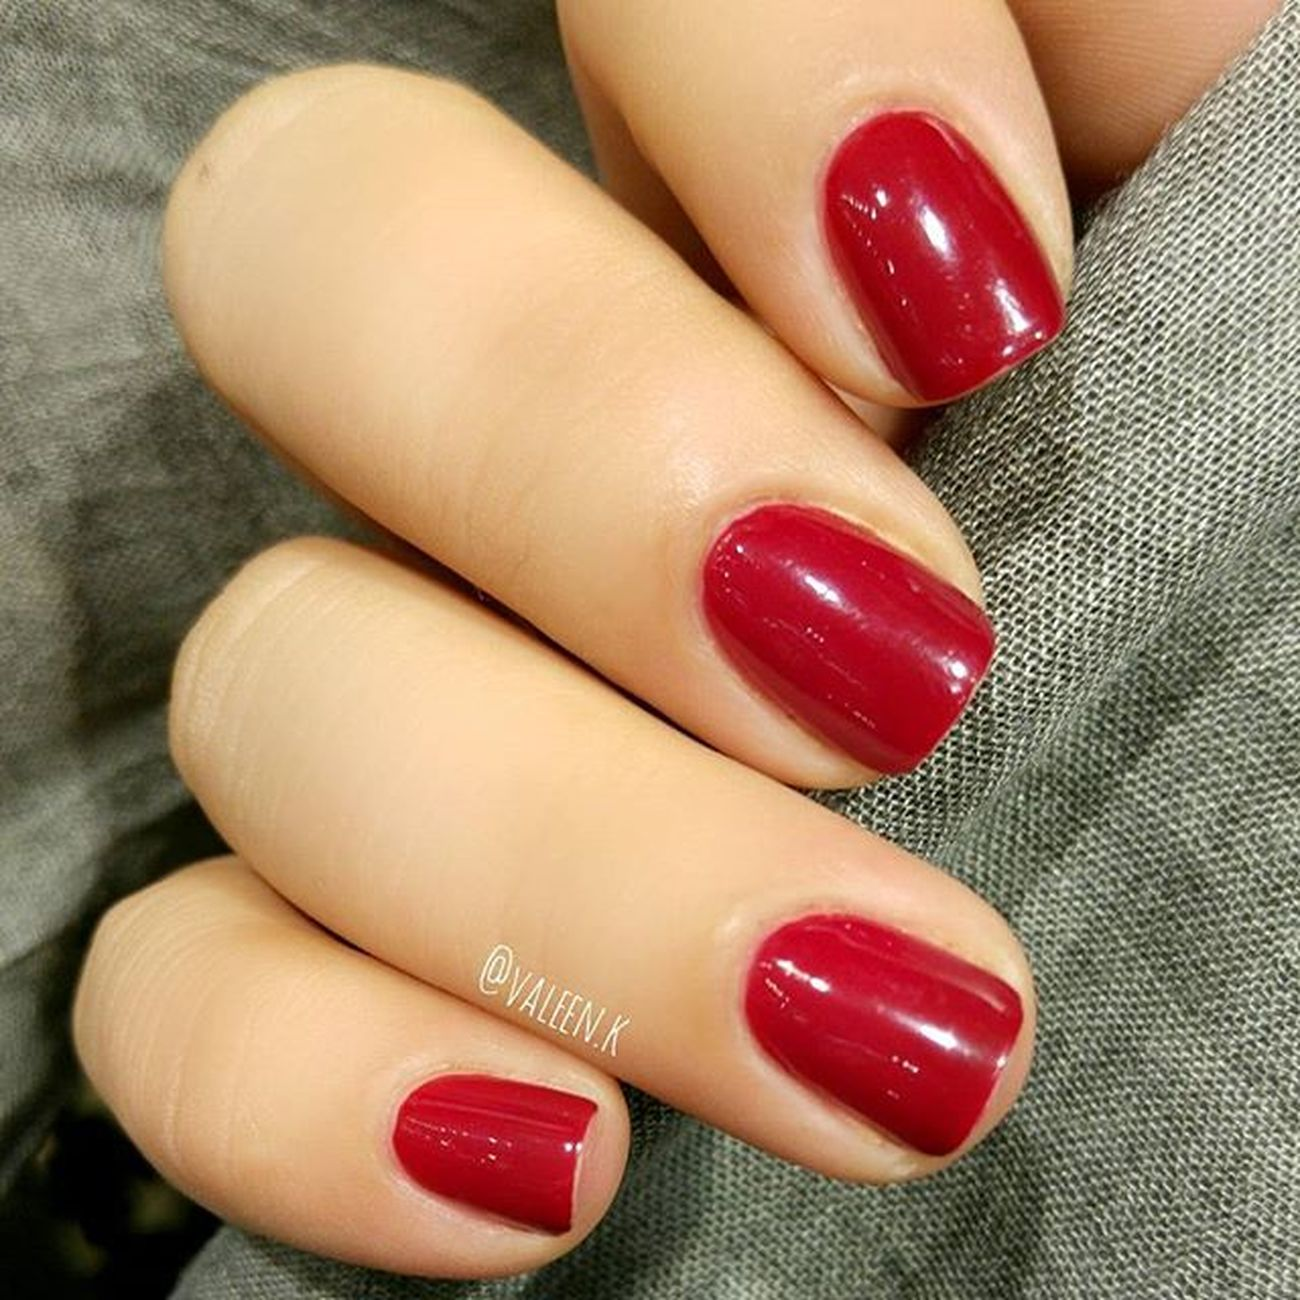 🌹 Rubis Folies 🌹️ @lorealmakeup Loreal Rubisfolies Lorealparis Lorealrubisfolies Lorealparisrubisfolies Fabulouslytrendy Ojesizgezmeyenlerkulubu Lovered Nails2inspire Lovenails Lorealnailpolish Nailsofinstagram Rednails Nails Nailartaddict Manicure Nailpolish Nailart  Nailssart Showmynails Notd Naildesign Naildesign Instanails маникюр  ногти nailjunkie nailpolishaddict polishaholic nailpolishjunkie essienista 💅